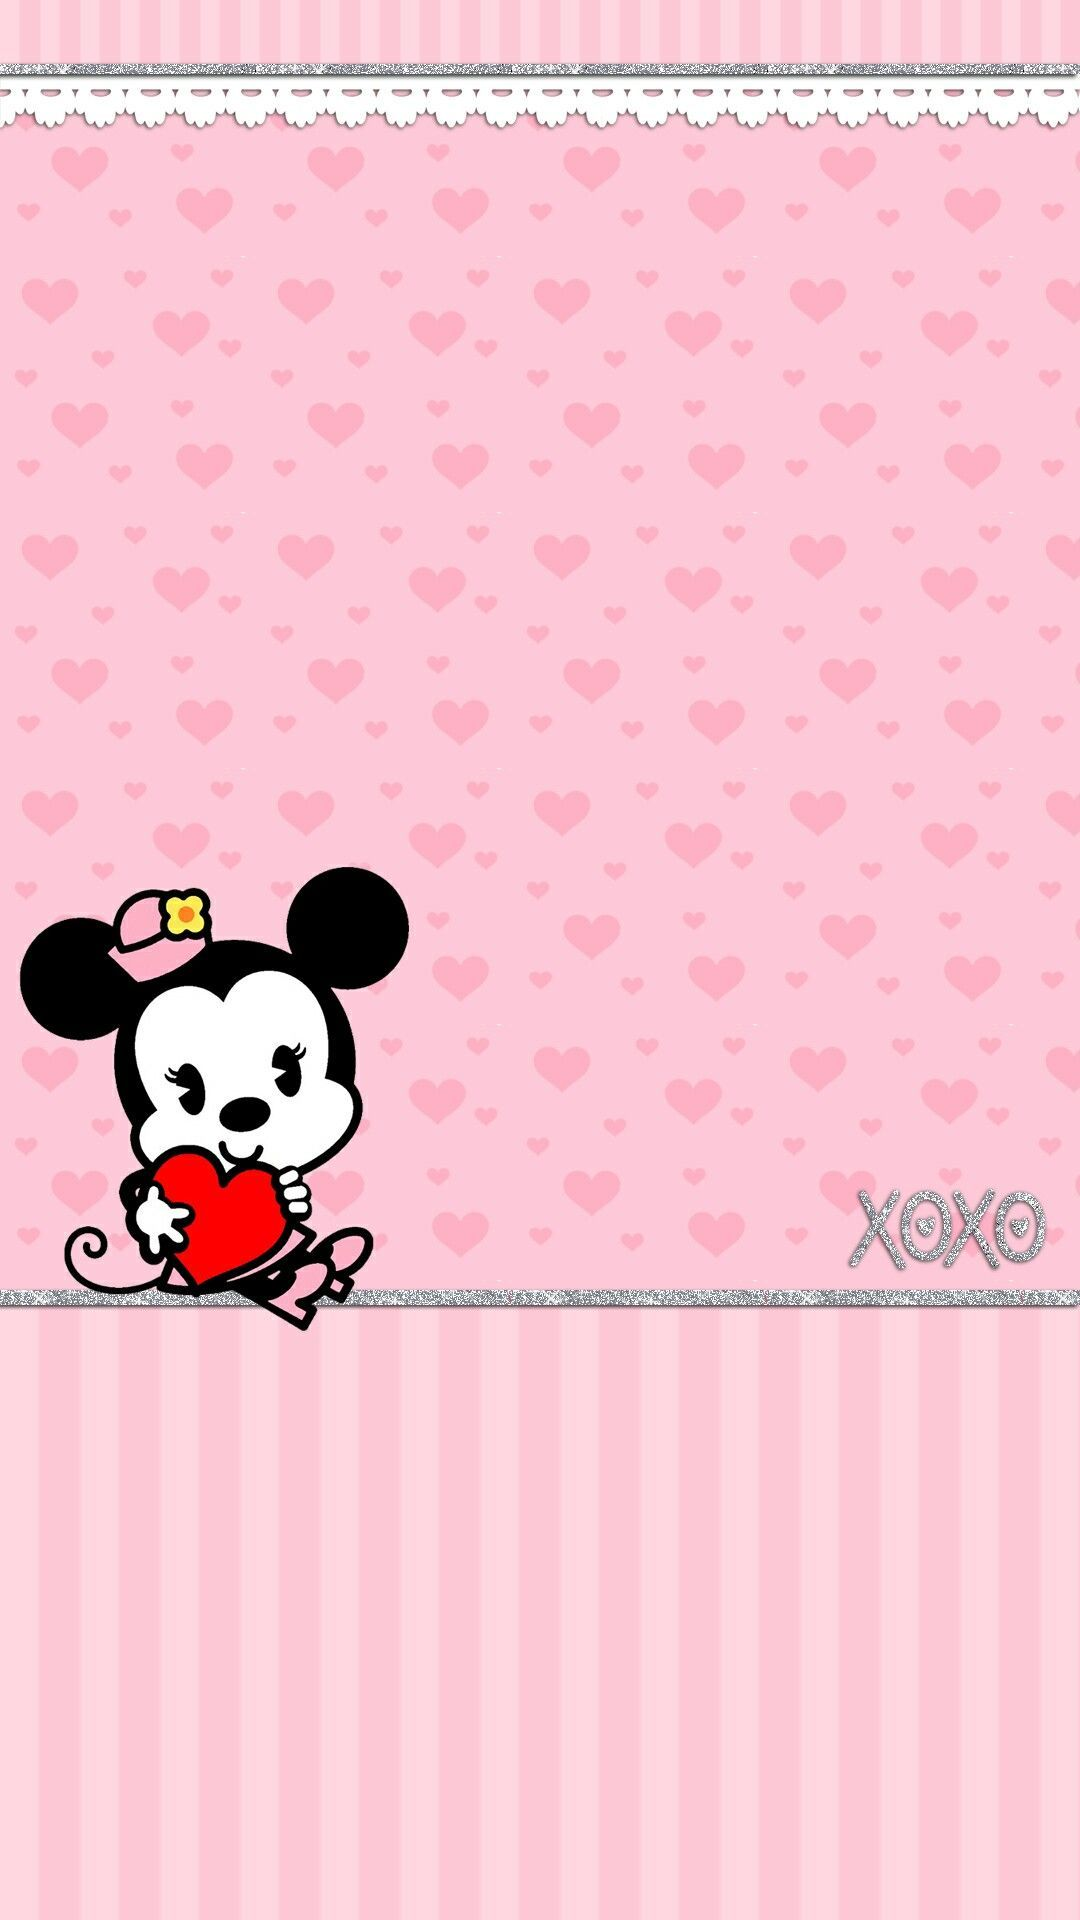 Vintage minnie mouse wallpapers top free vintage minnie mouse backgrounds wallpaperaccess - Minnie mouse wallpaper pinterest ...